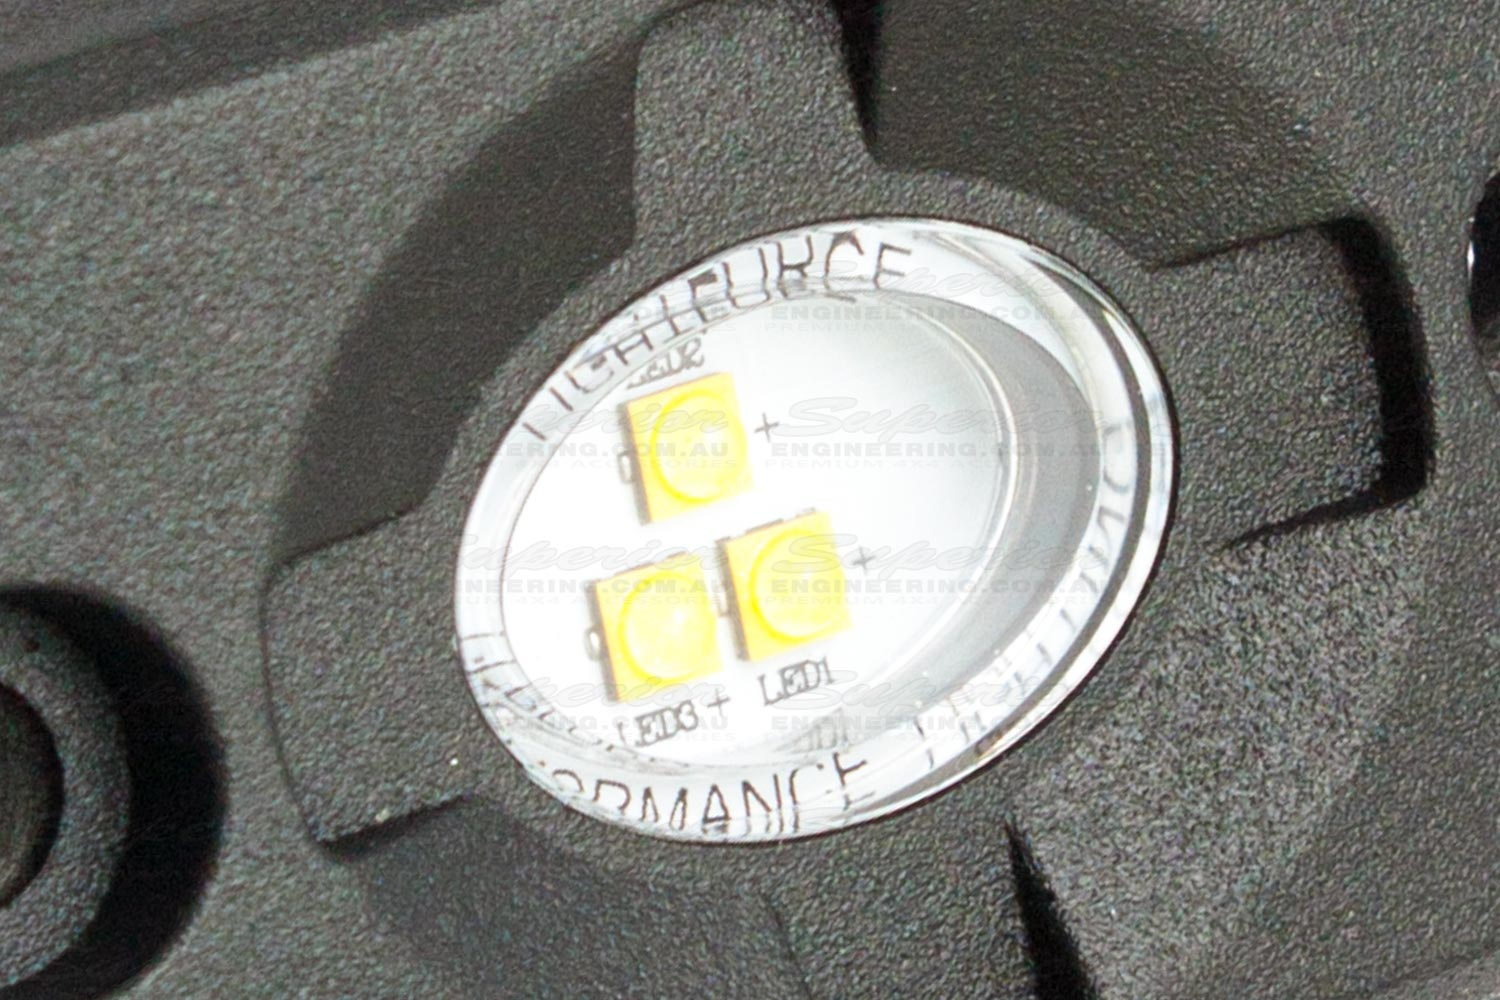 Closeup view of the Lightforce ROK9 LED lights